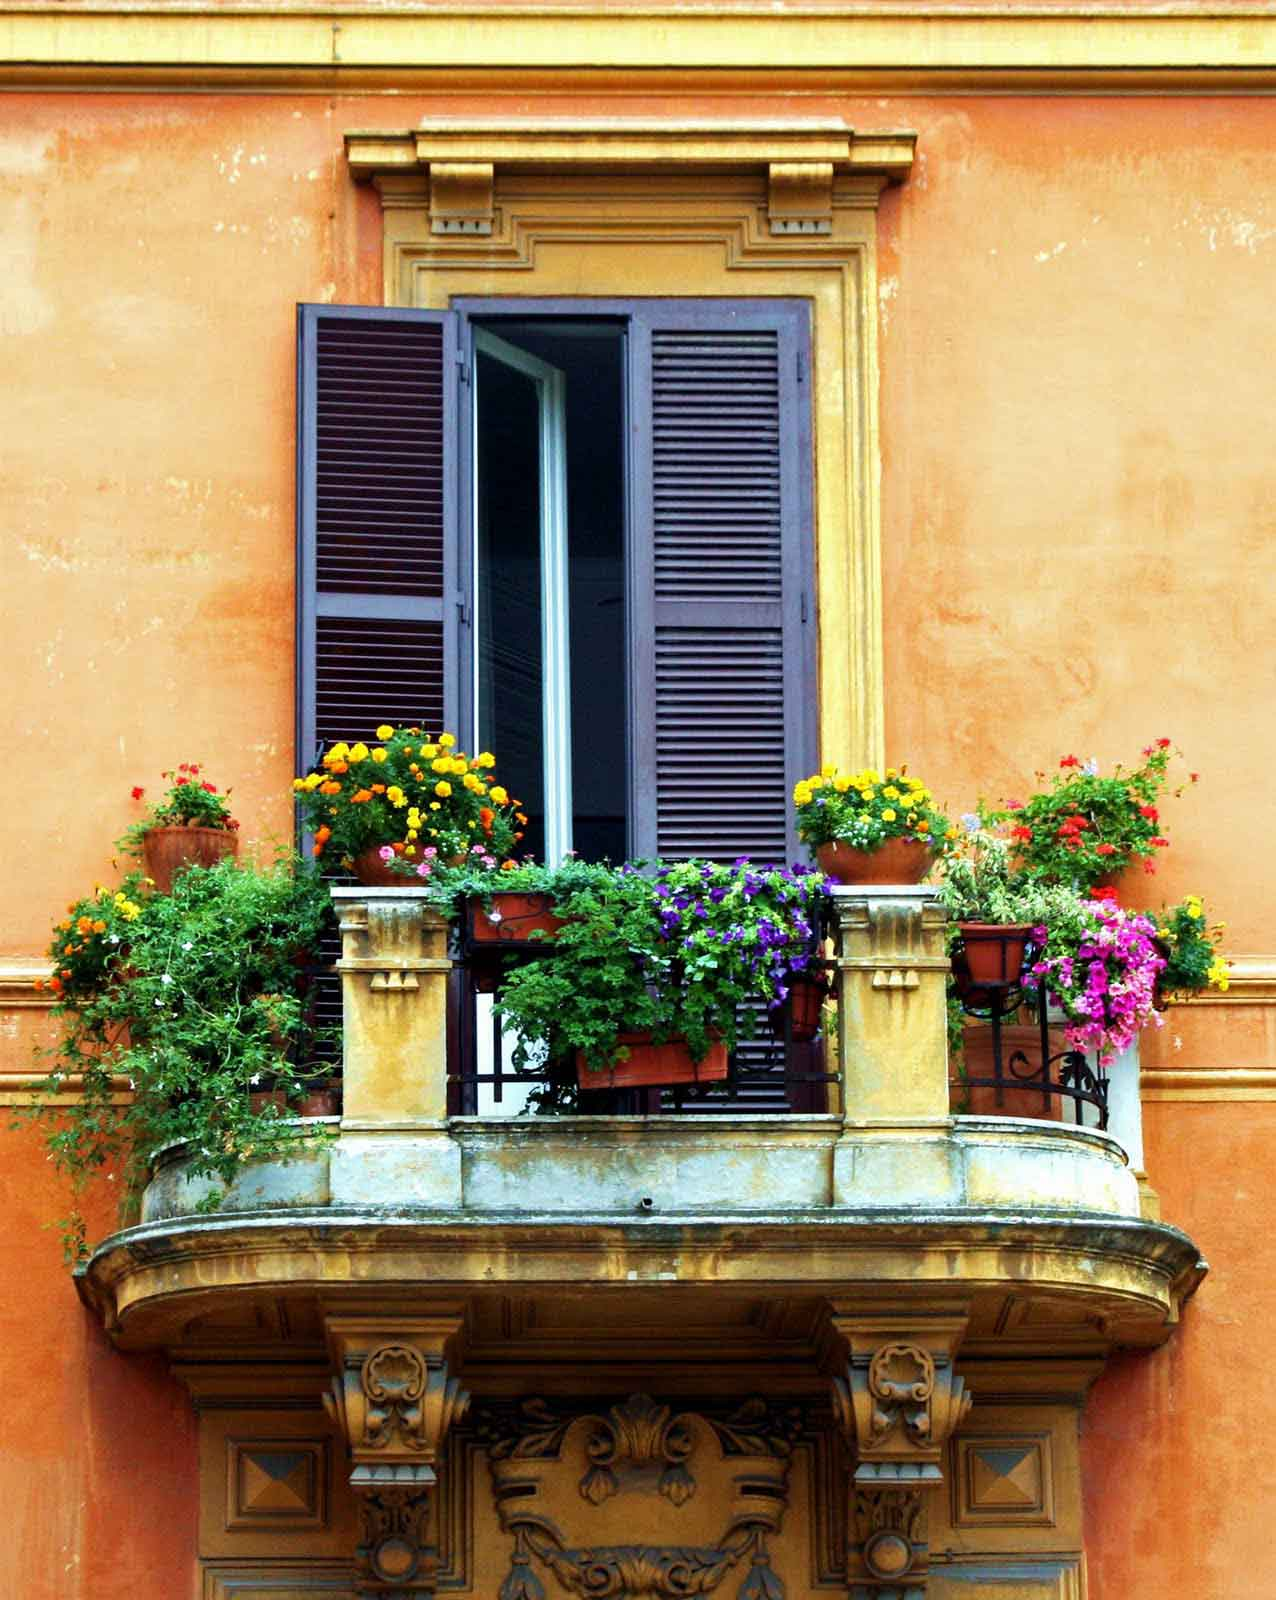 35 world 39 s most beautiful balconies your no 1 source of for What is a balcony